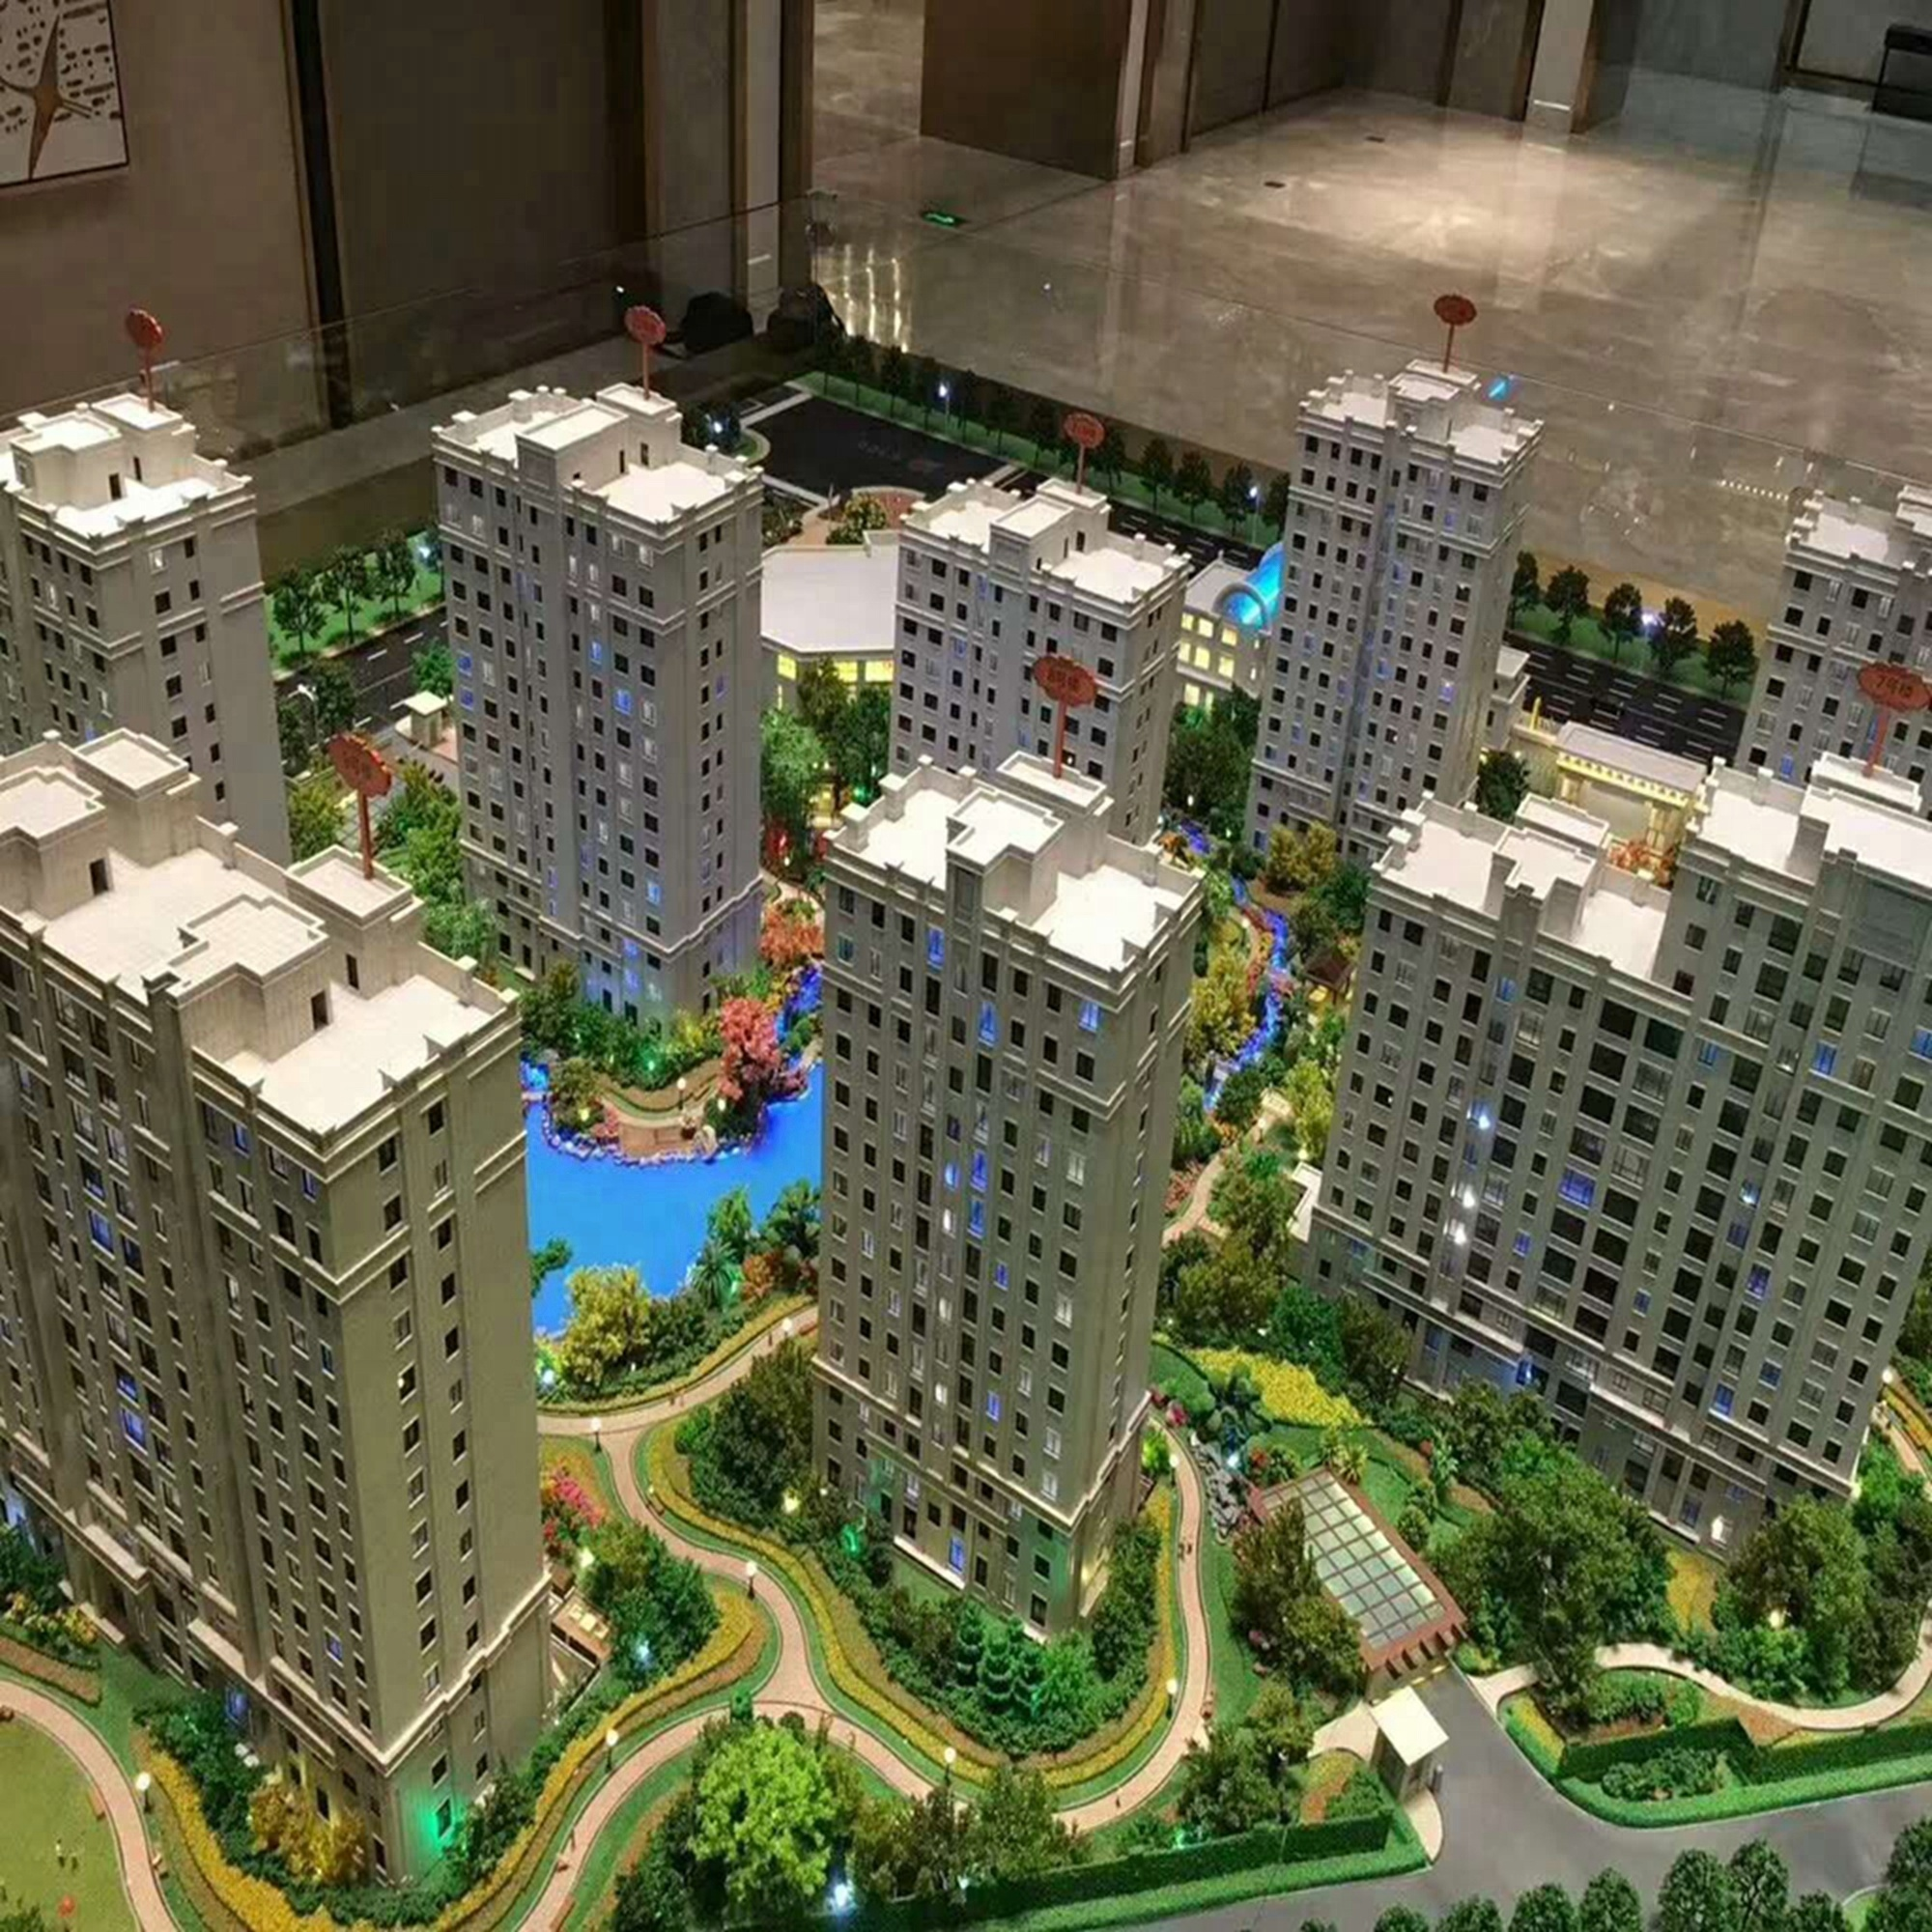 3D real estate new design model / architectural scale model making / construction building models